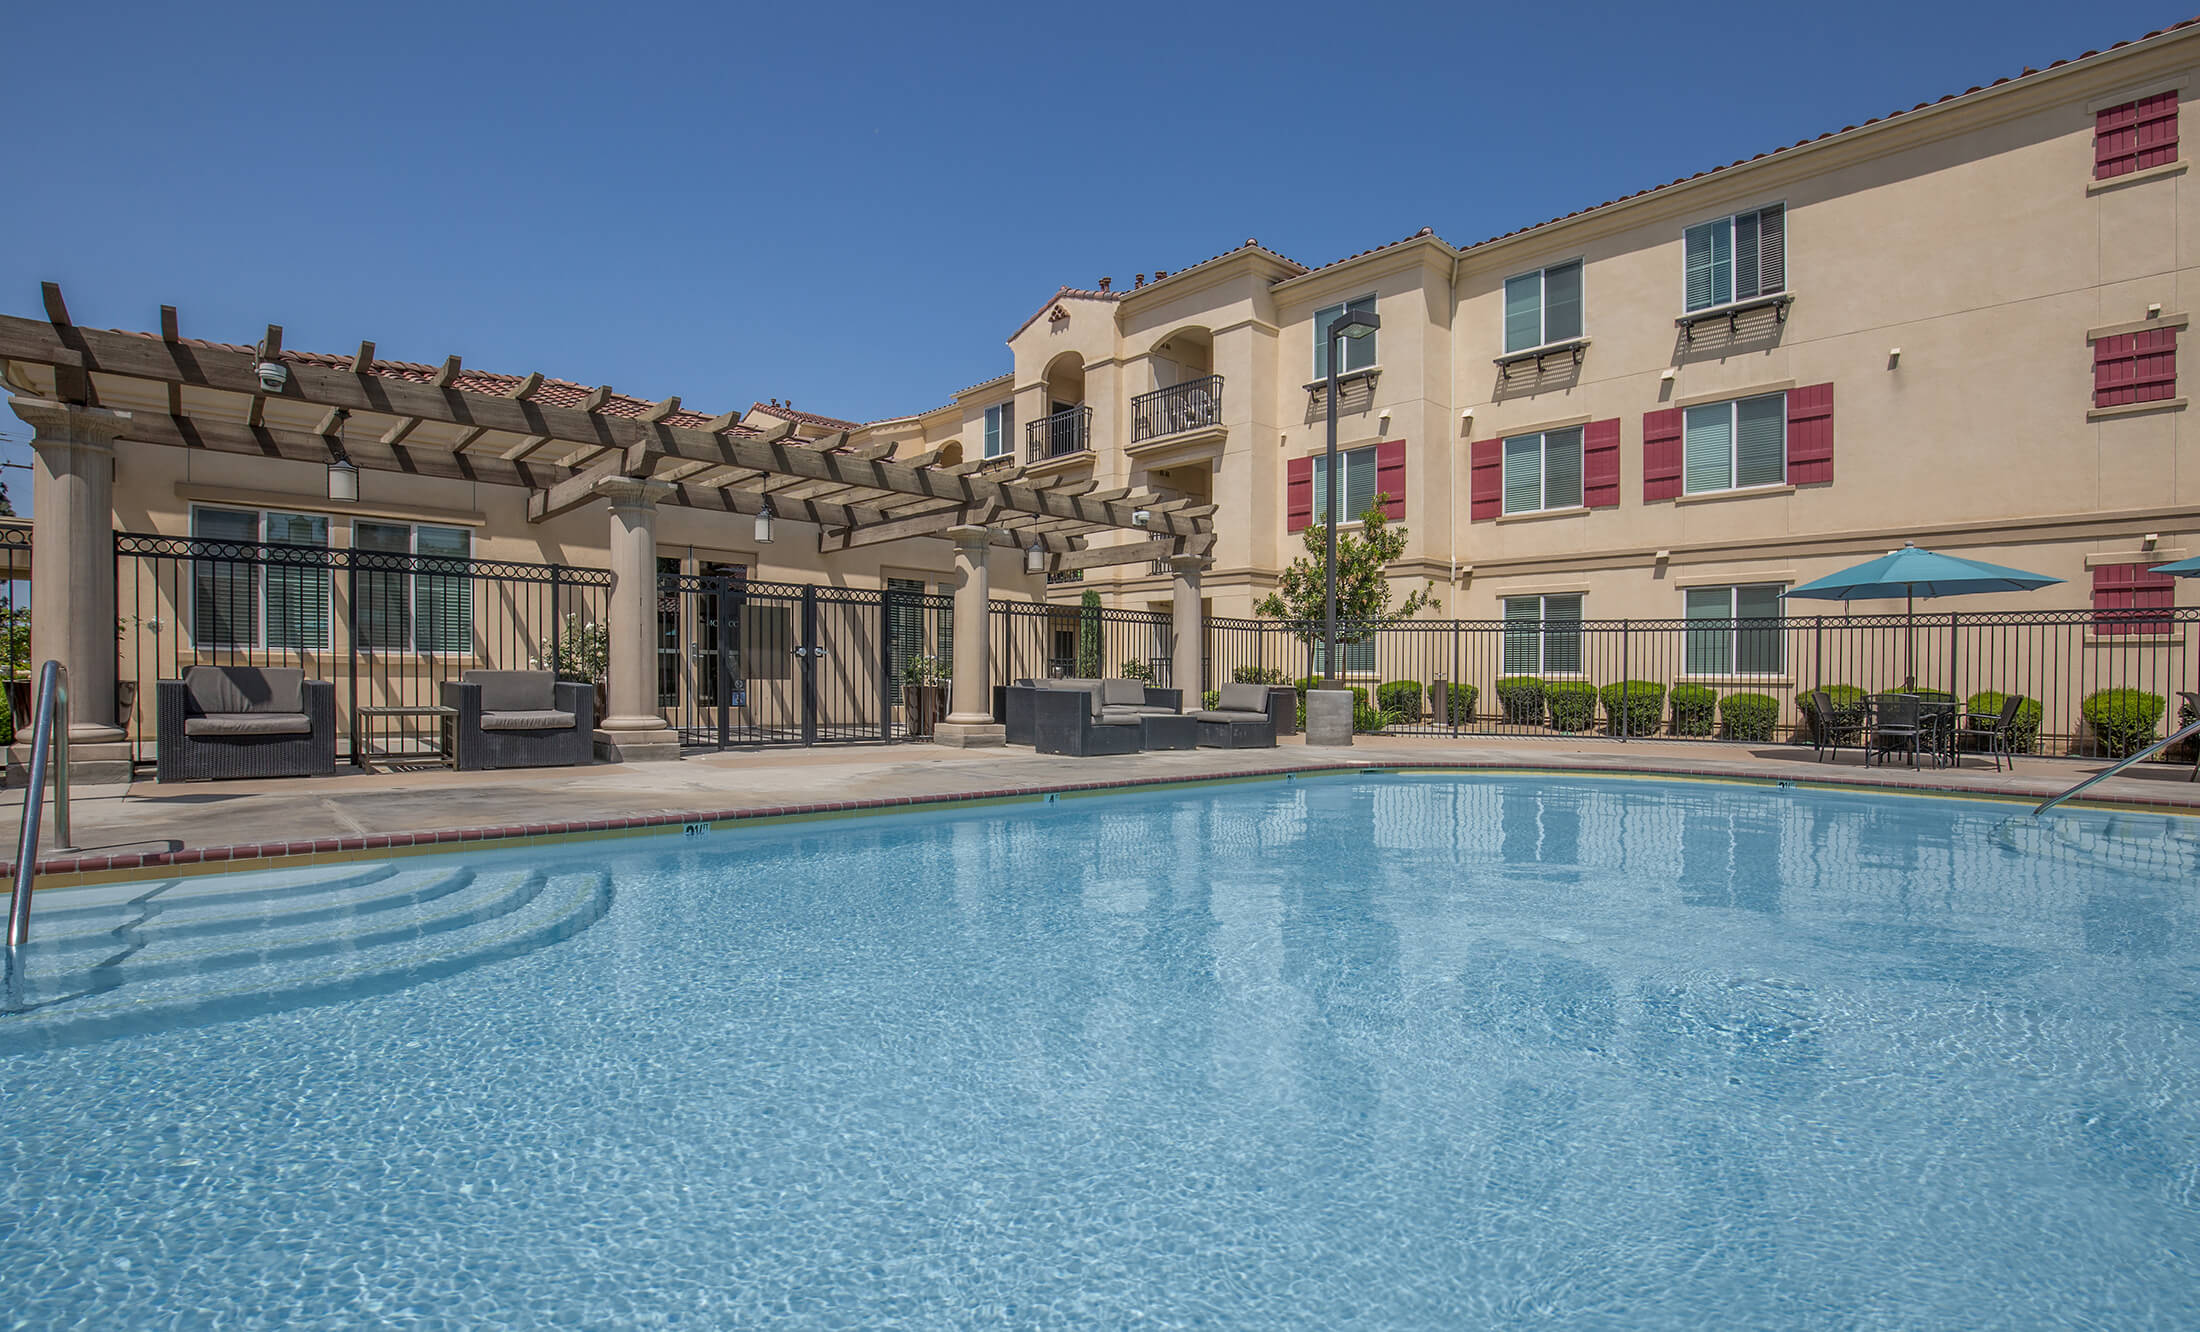 Monaco Apartments Apartments In Chino Ca Math Wallpaper Golden Find Free HD for Desktop [pastnedes.tk]